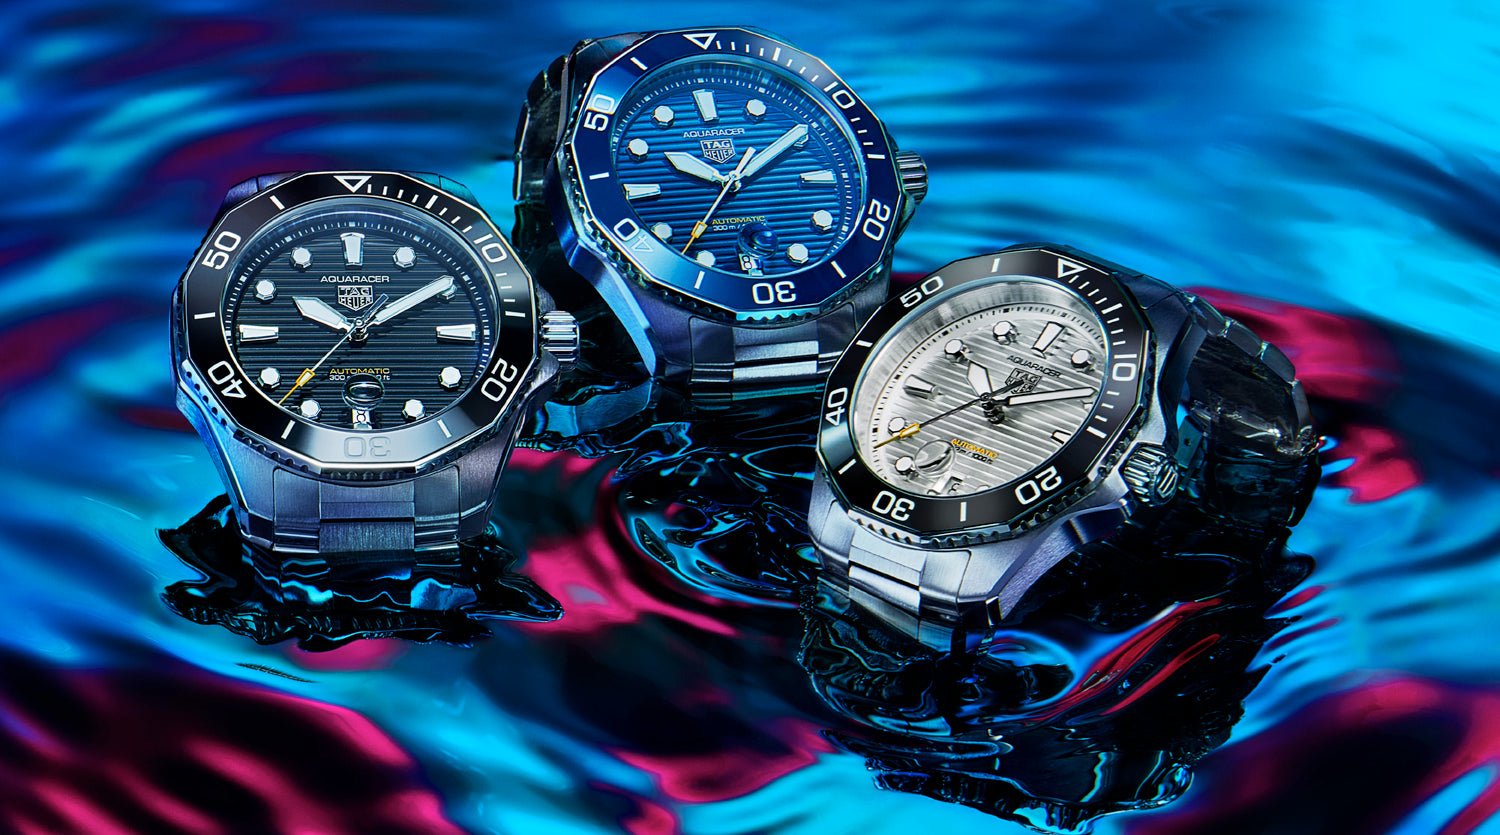 tag heuer aquaracer water resistant watches